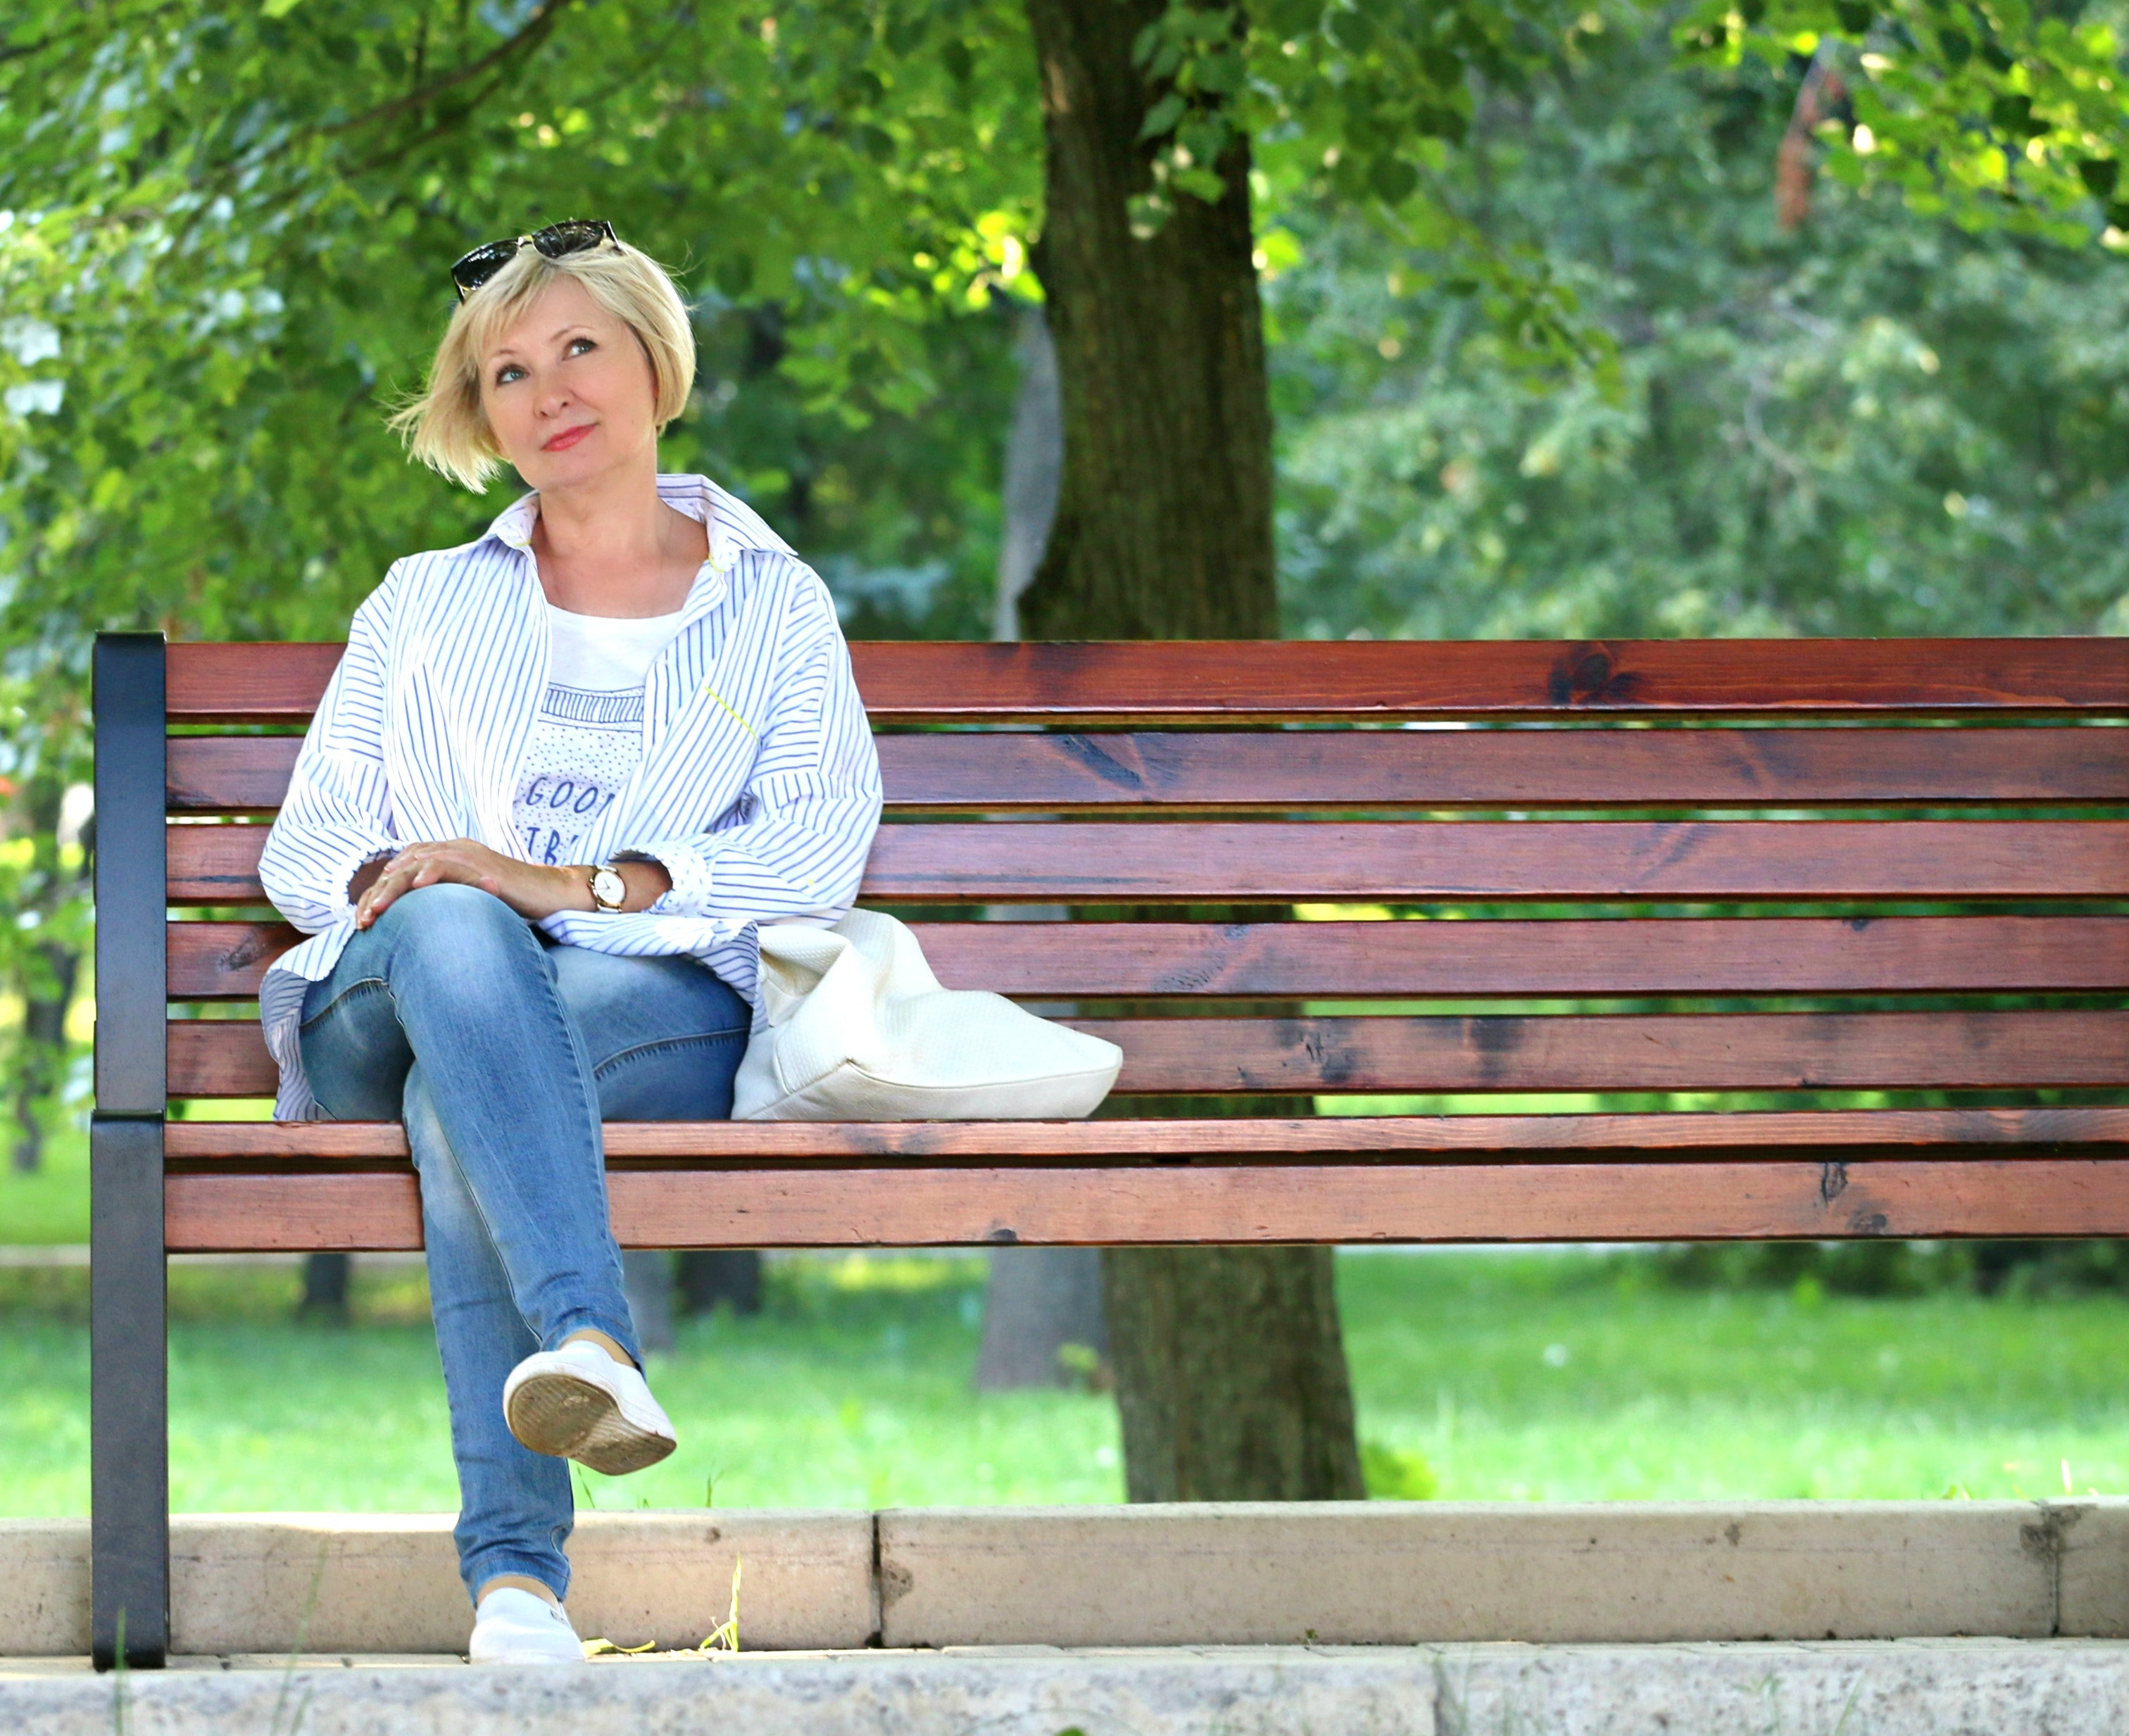 Thinking woman in white jacket and white scoop neck shirt blue denim jeans sitting on brown wooden bench beside green trees during daytime photo